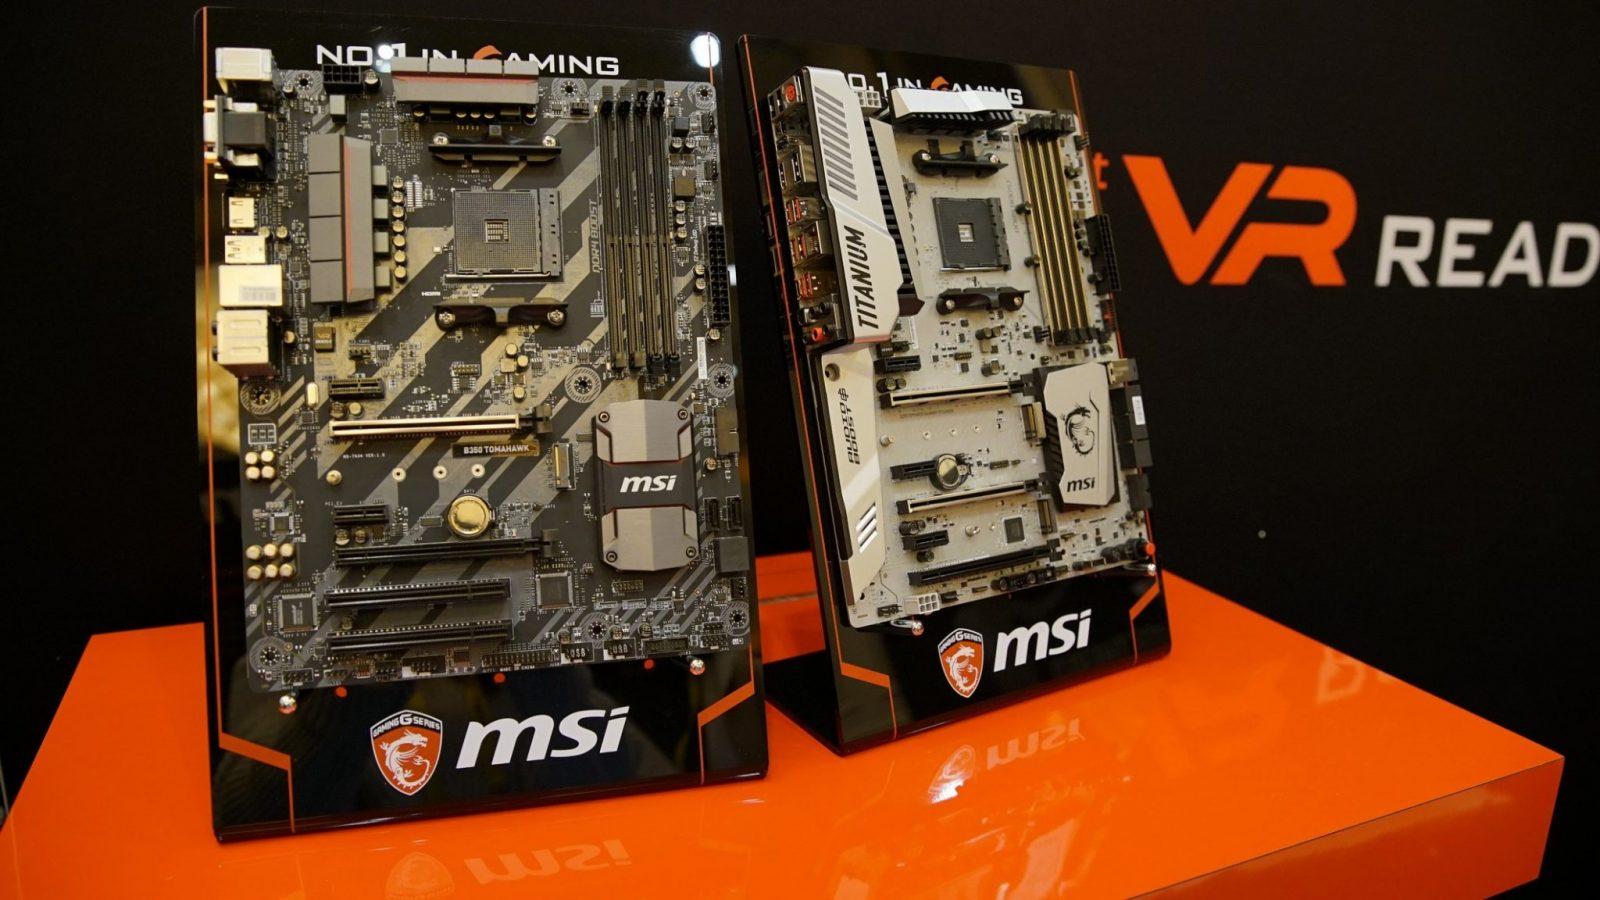 MSI AM4 B350 Tomahawk and X370 XPOWER Gaming Titanium spotted at CES 2017